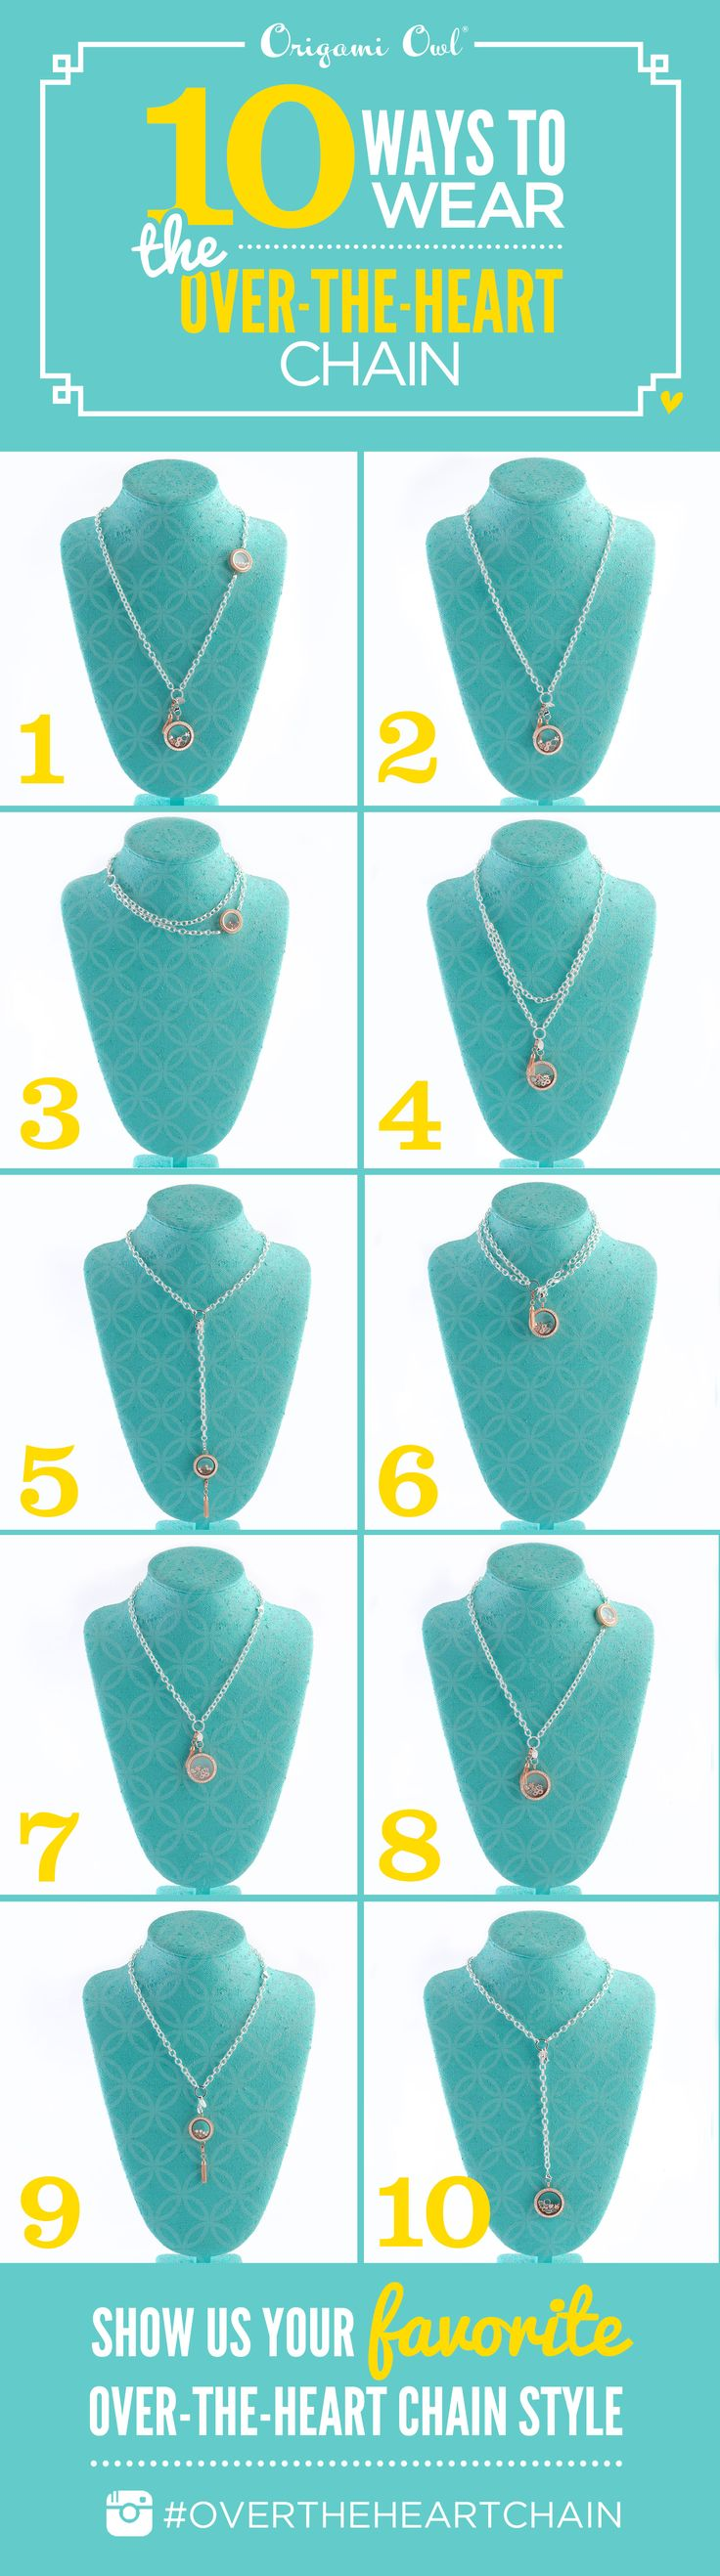 Check out the 10 amazing ways you can create these looks with the Over-the heart chain.